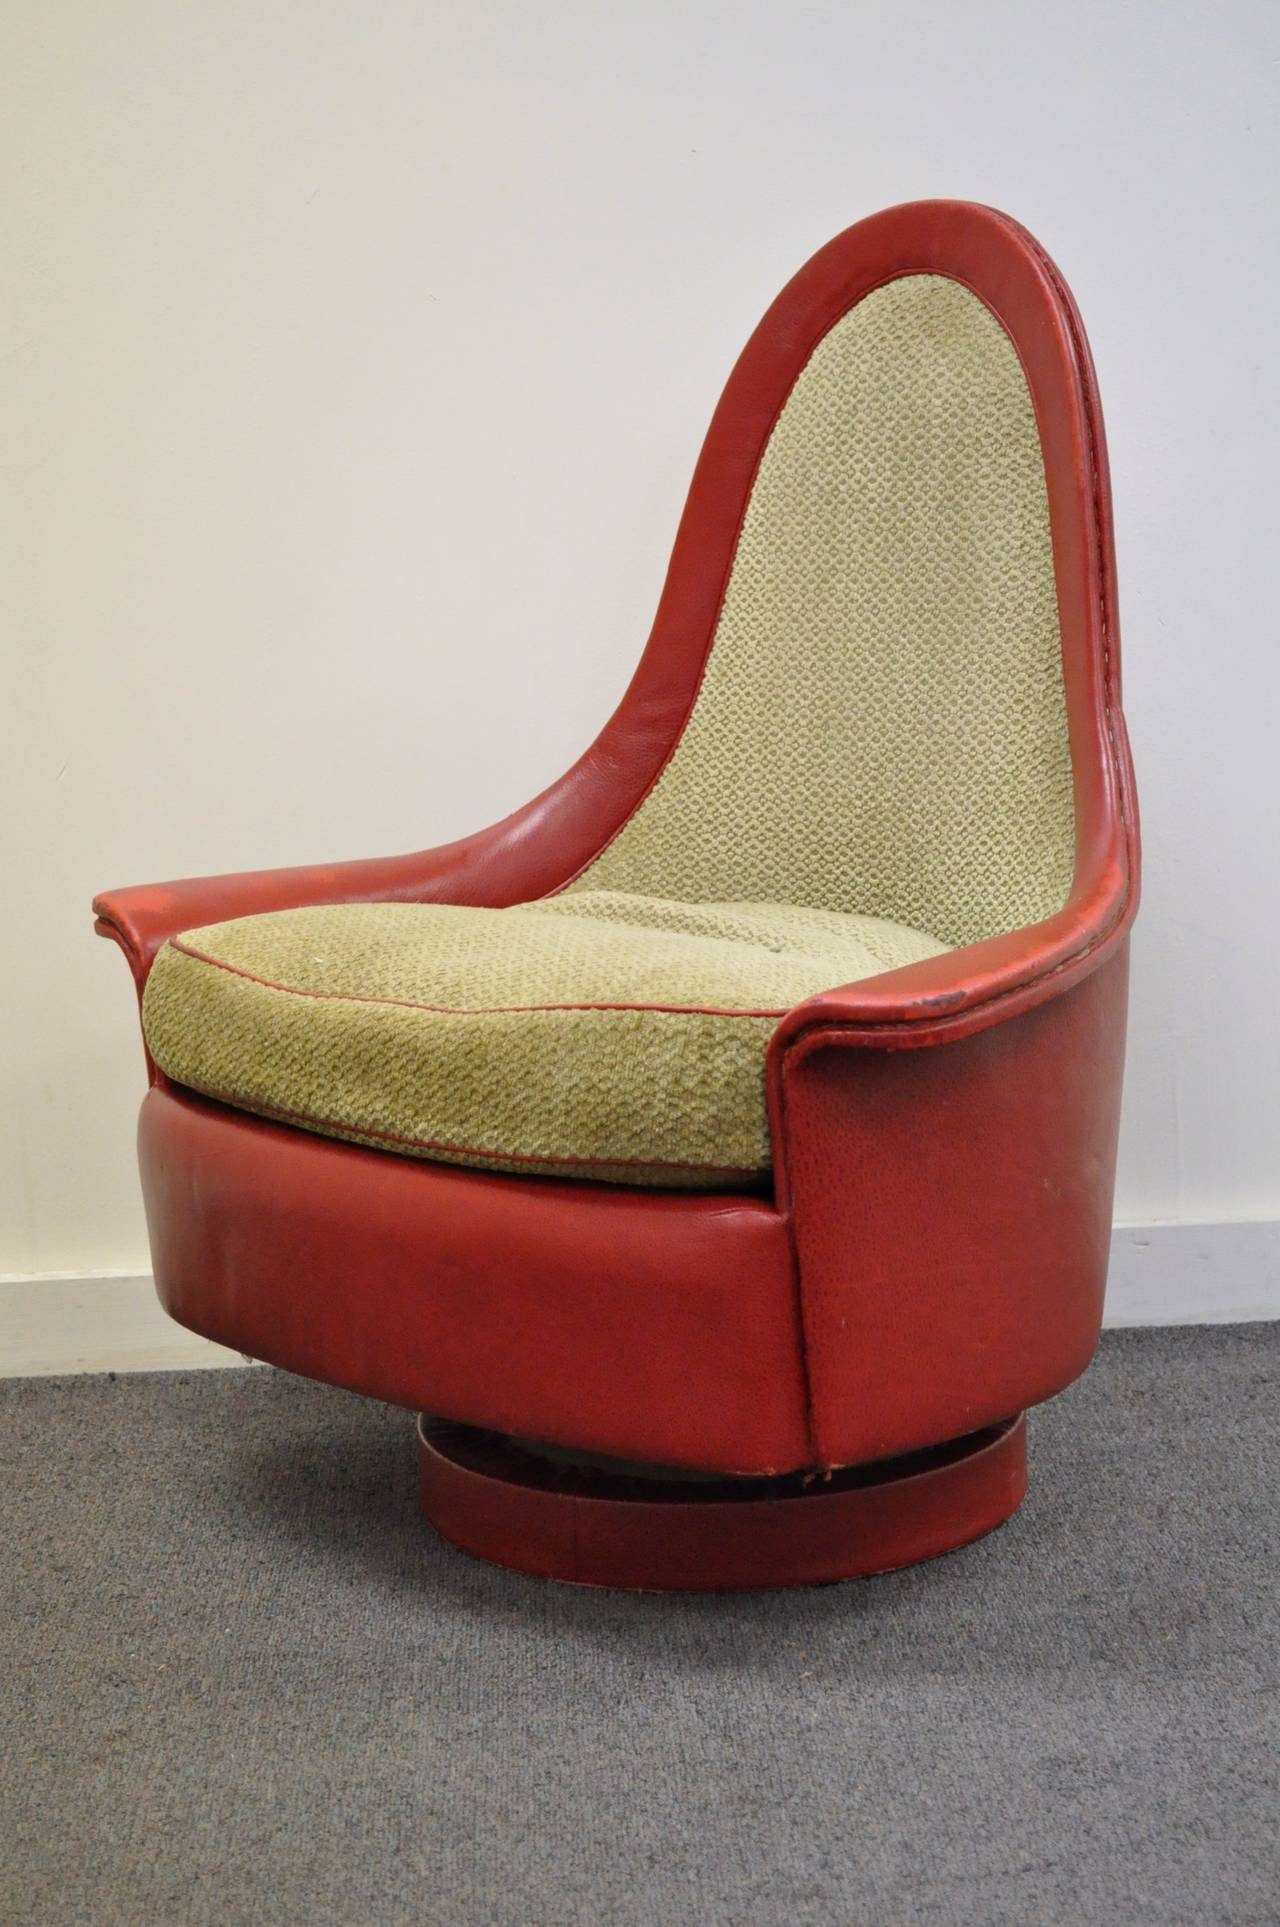 Very rare original, mid century modern swivel and tilt petite armchair attributed to Milo Baughman for Thayer Coggin. This unique item features a sculpted frame with rolled and flared arms, tapered tear drop back, revolve and tilt plinth, and